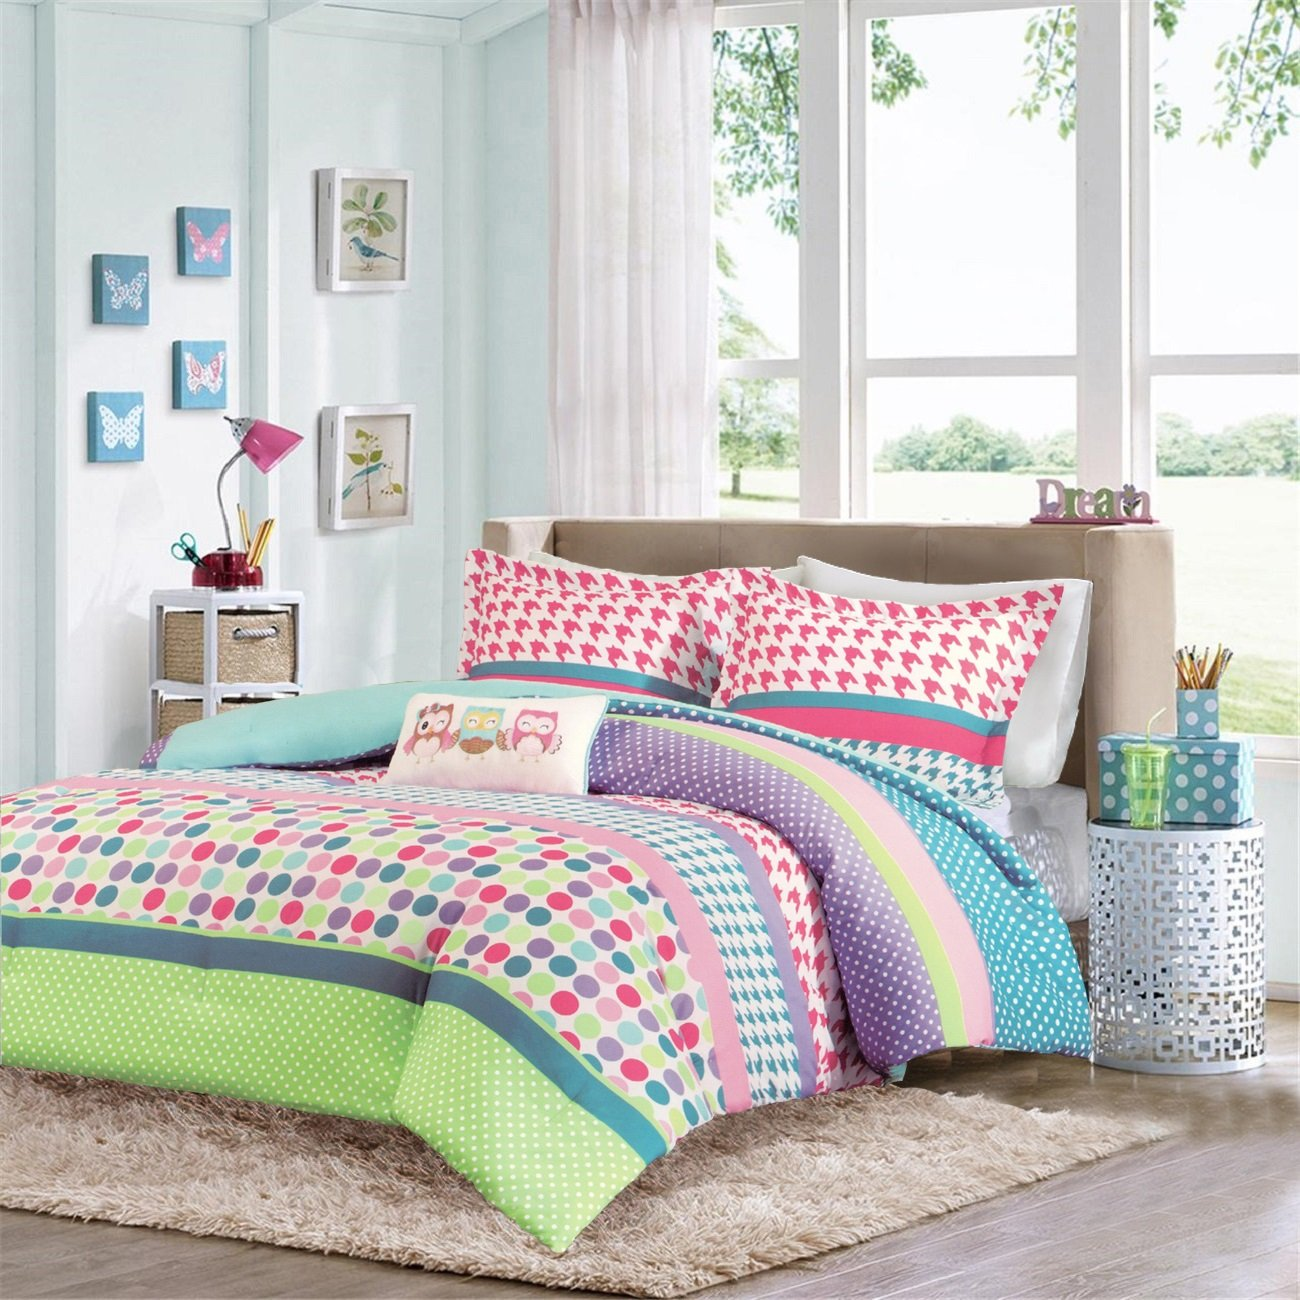 Girls Teen Kids Modern Comforter Bedding Set